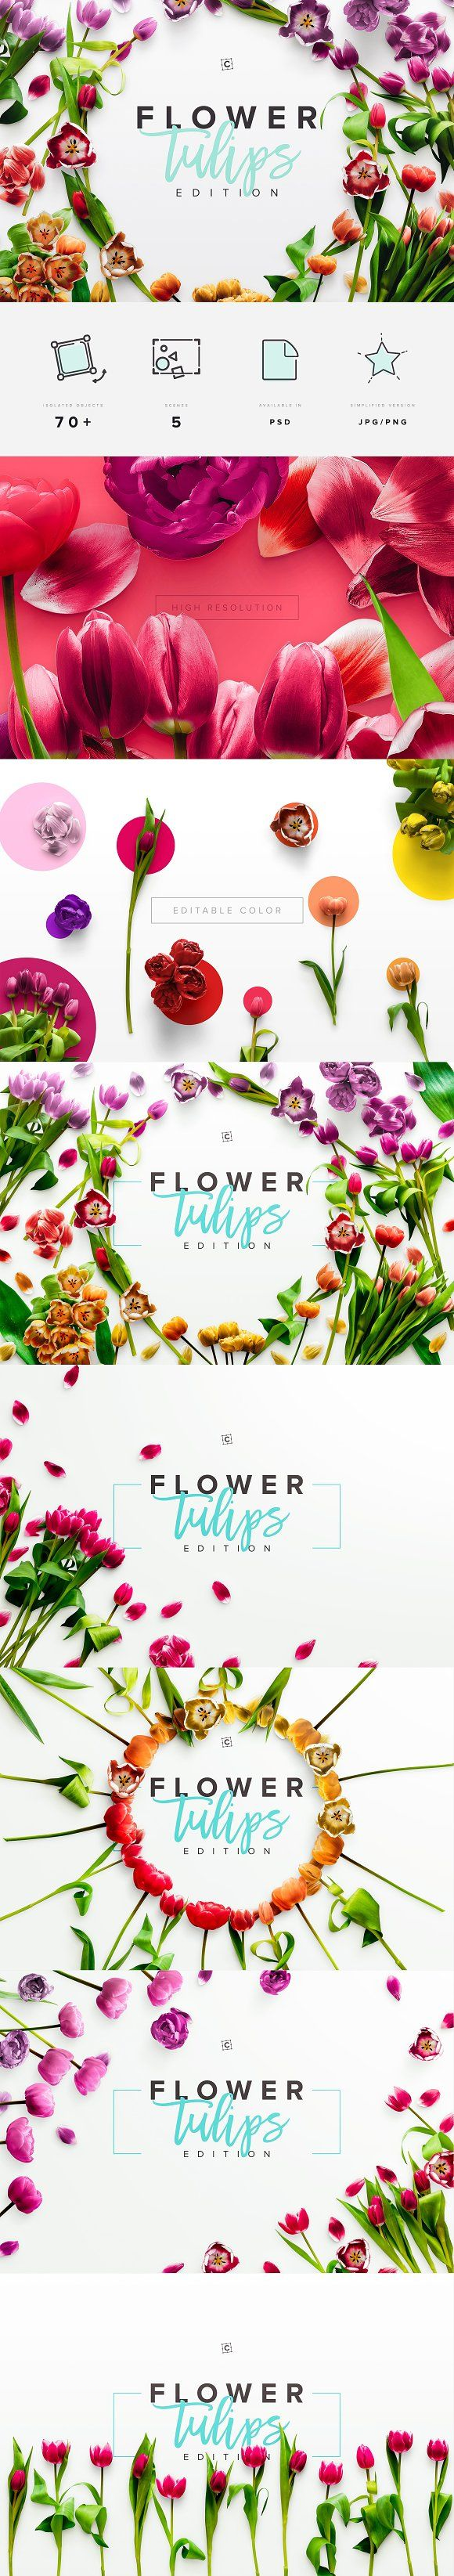 Flower Tulips Edition - Custom Scene - Product Mockups The second edition of our flower series features the quintessential spring flower, the Tulip! Add natural beauty to your product styling and create stunning content for your social media feed.